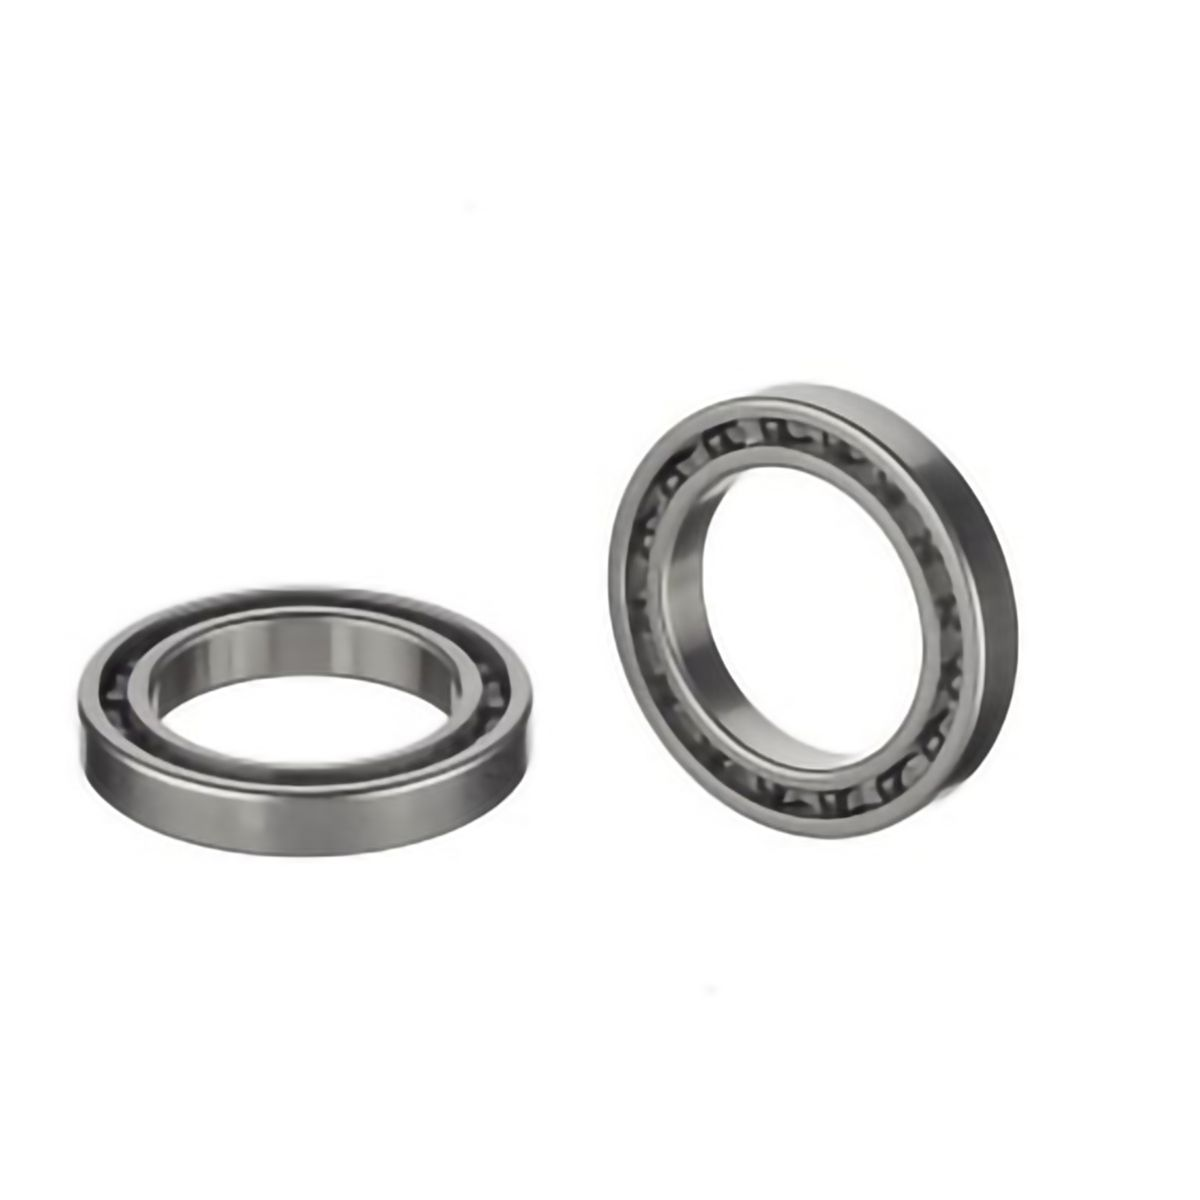 Super Record Ultra Torque replacement bearing